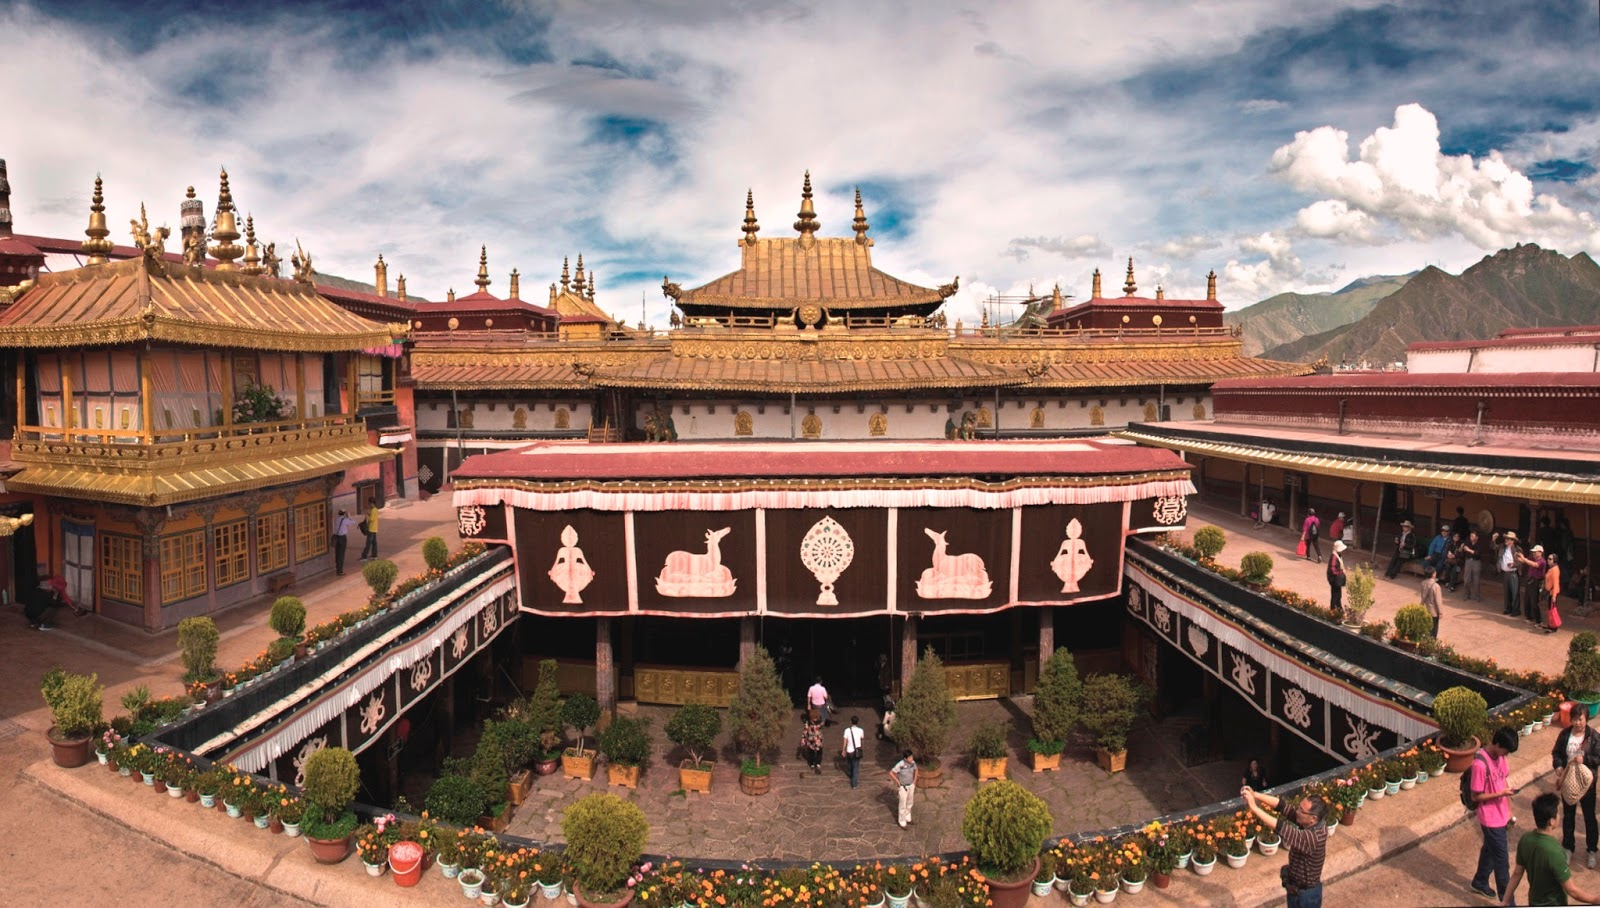 Lhasa China  city pictures gallery : ... Lhasa ལྷ་ས, 拉萨 . A voyage to Lhasa, Tibet, China, Asia